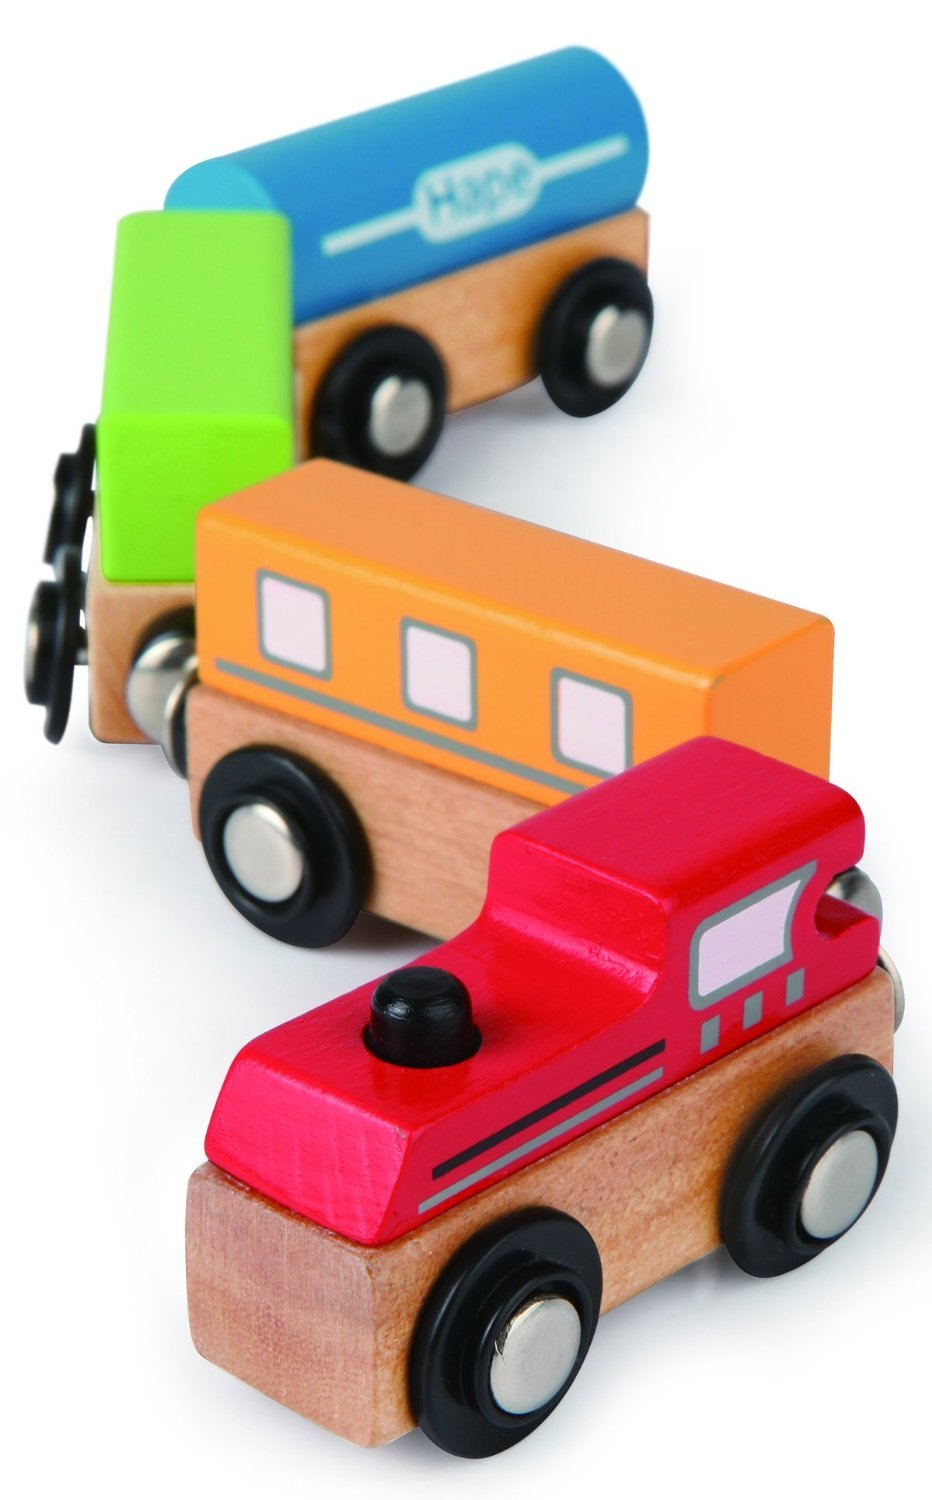 Hape: Magnetic Classic Train Toy image